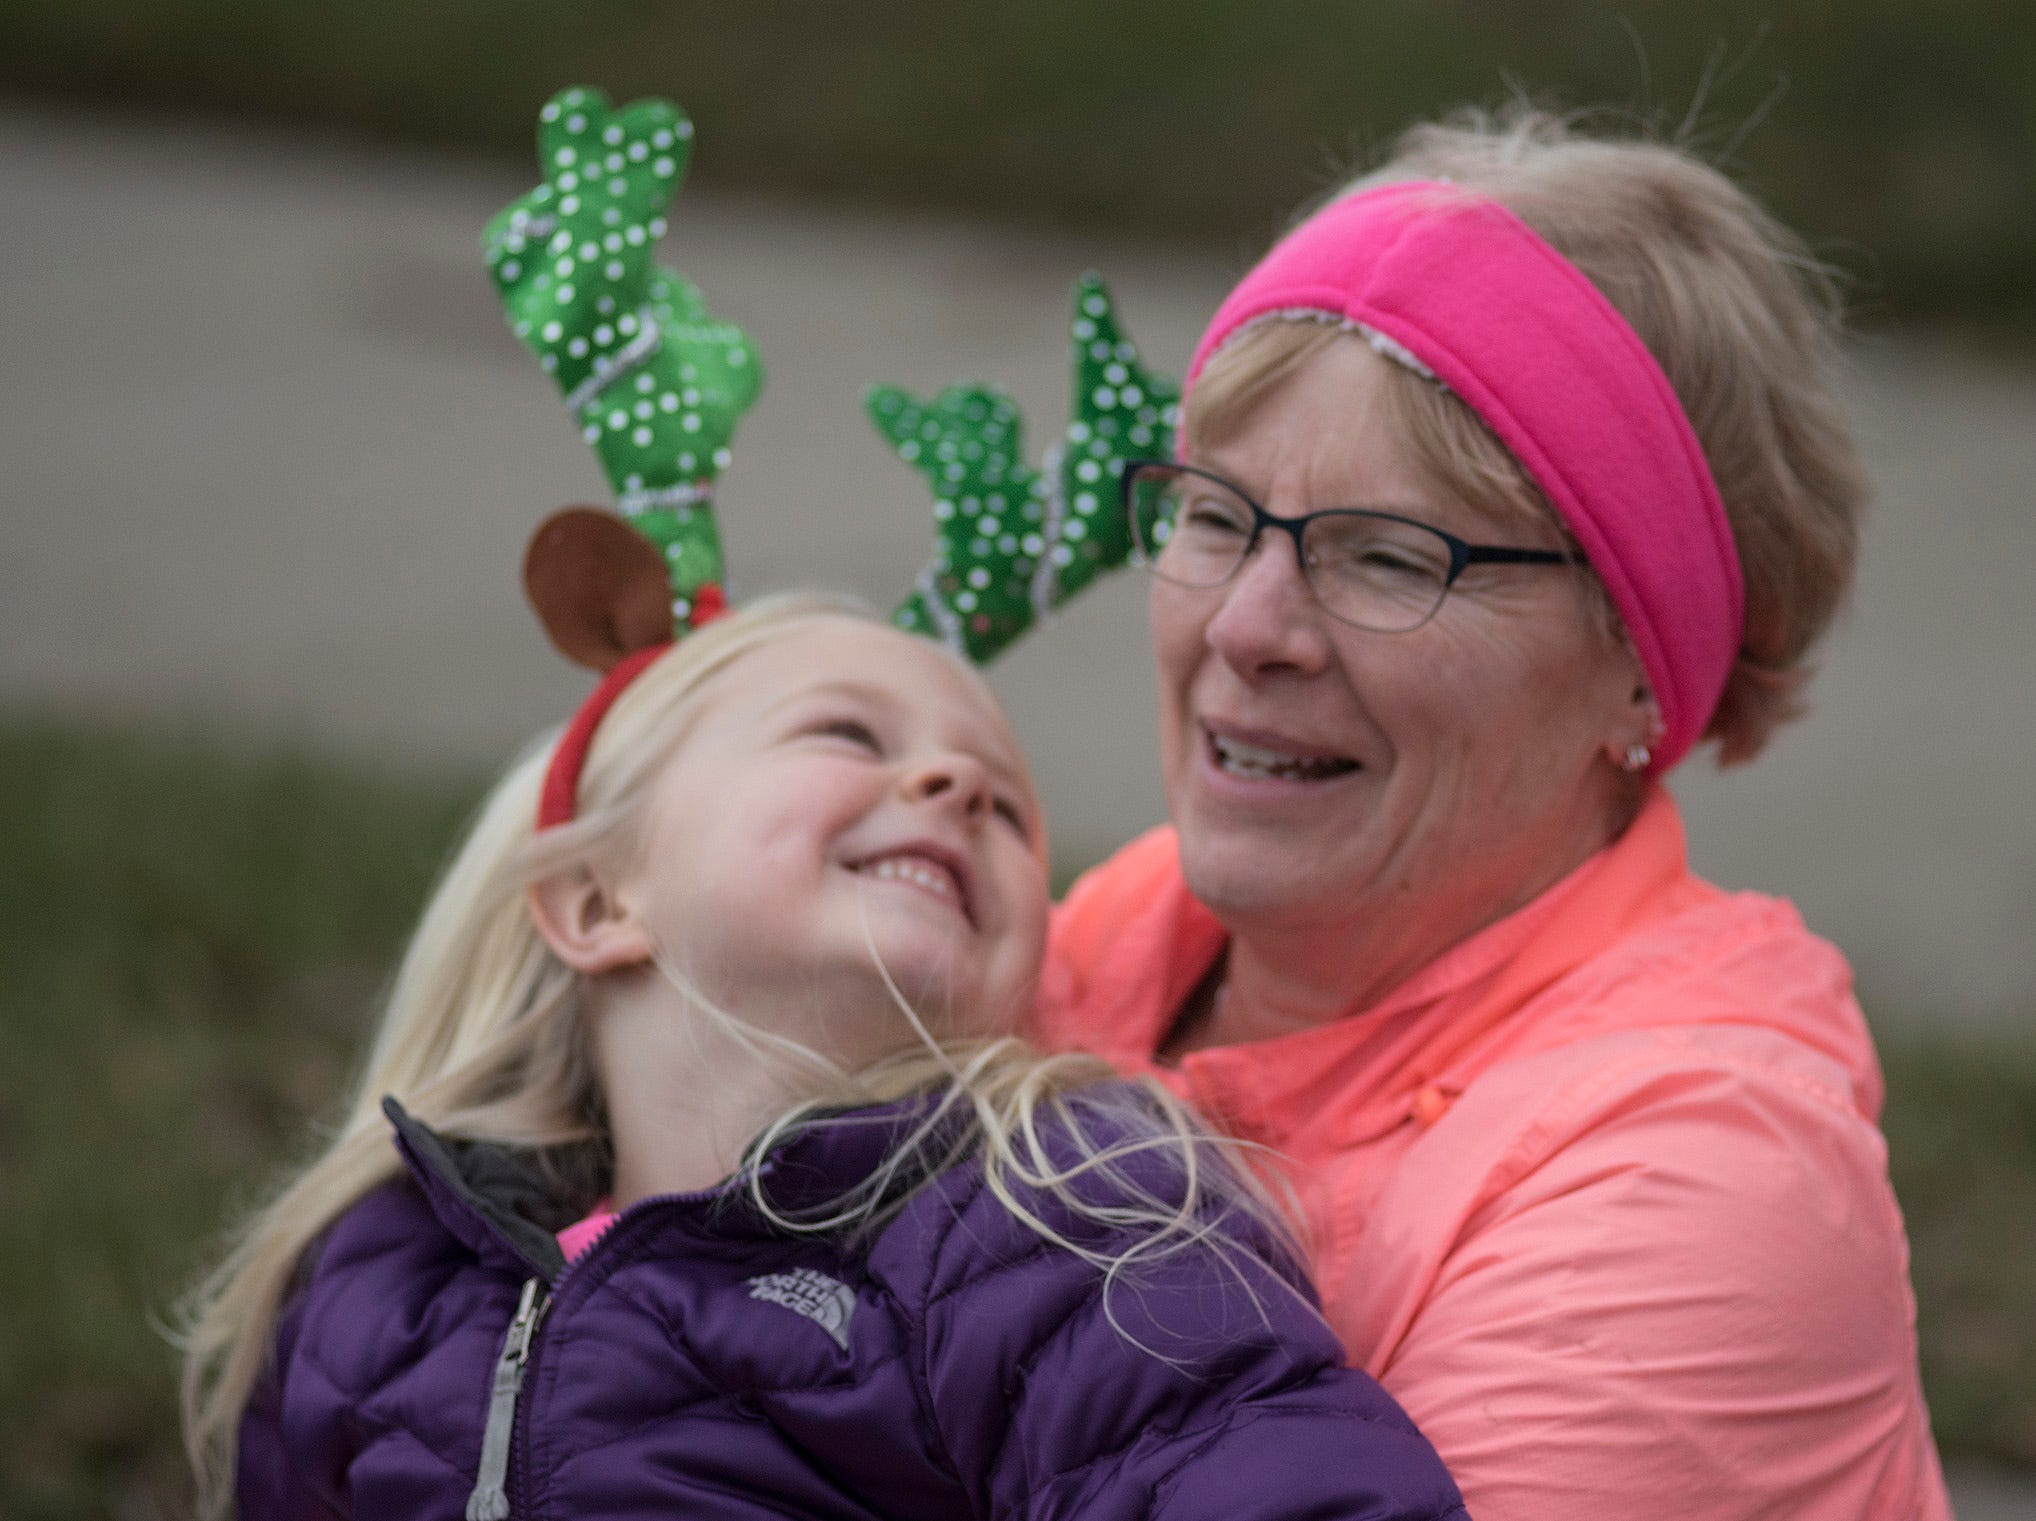 Six year old Annabella Lizear and Grandma Kathy Morrow, waiting for the parade to begin.